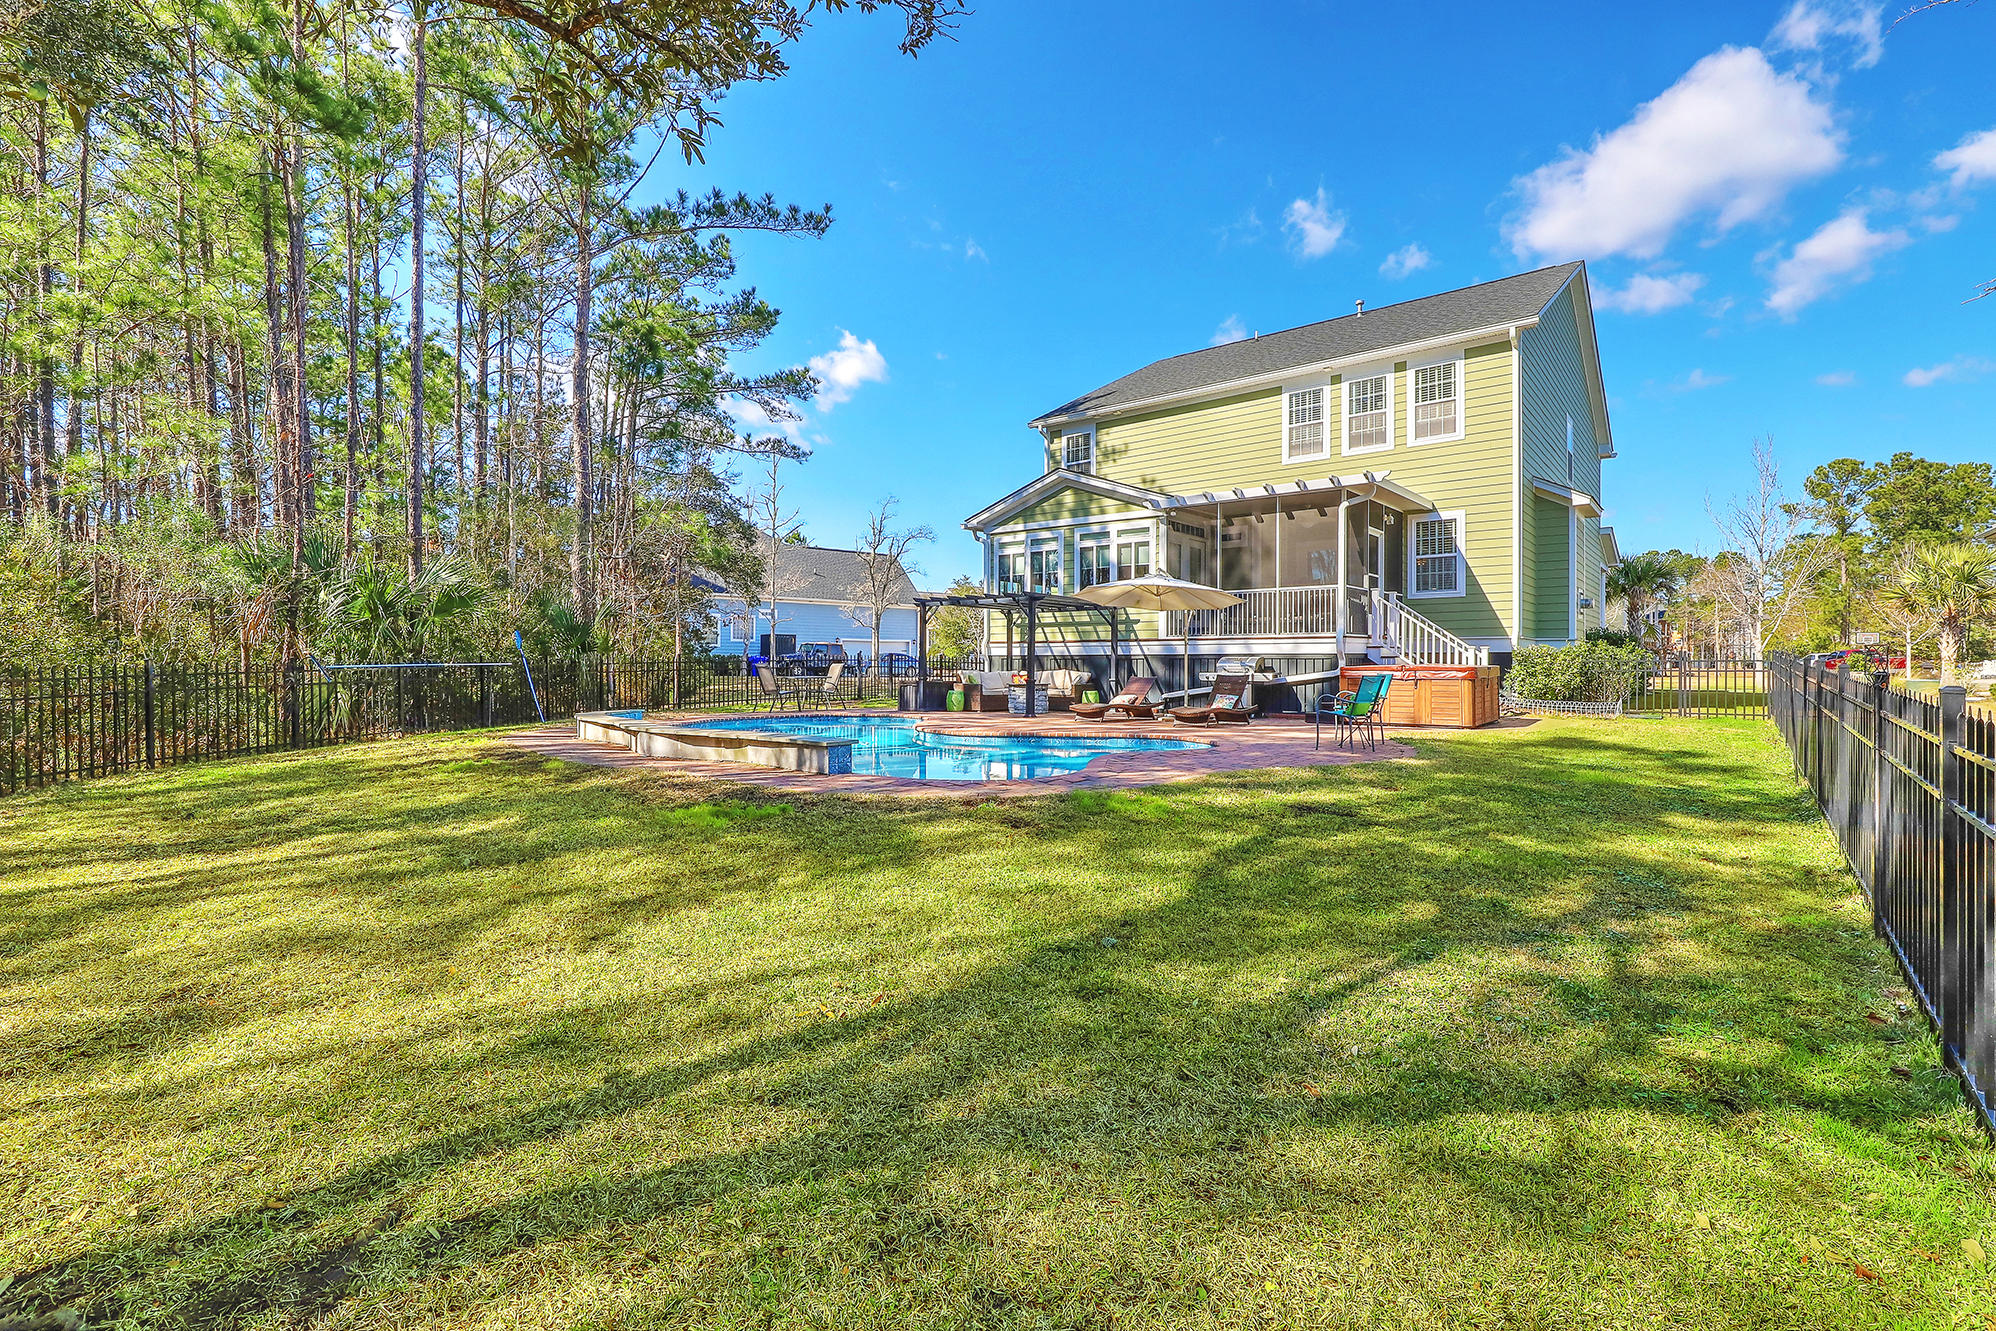 Rivertowne On The Wando Homes For Sale - 2105 Sandy Point, Mount Pleasant, SC - 27